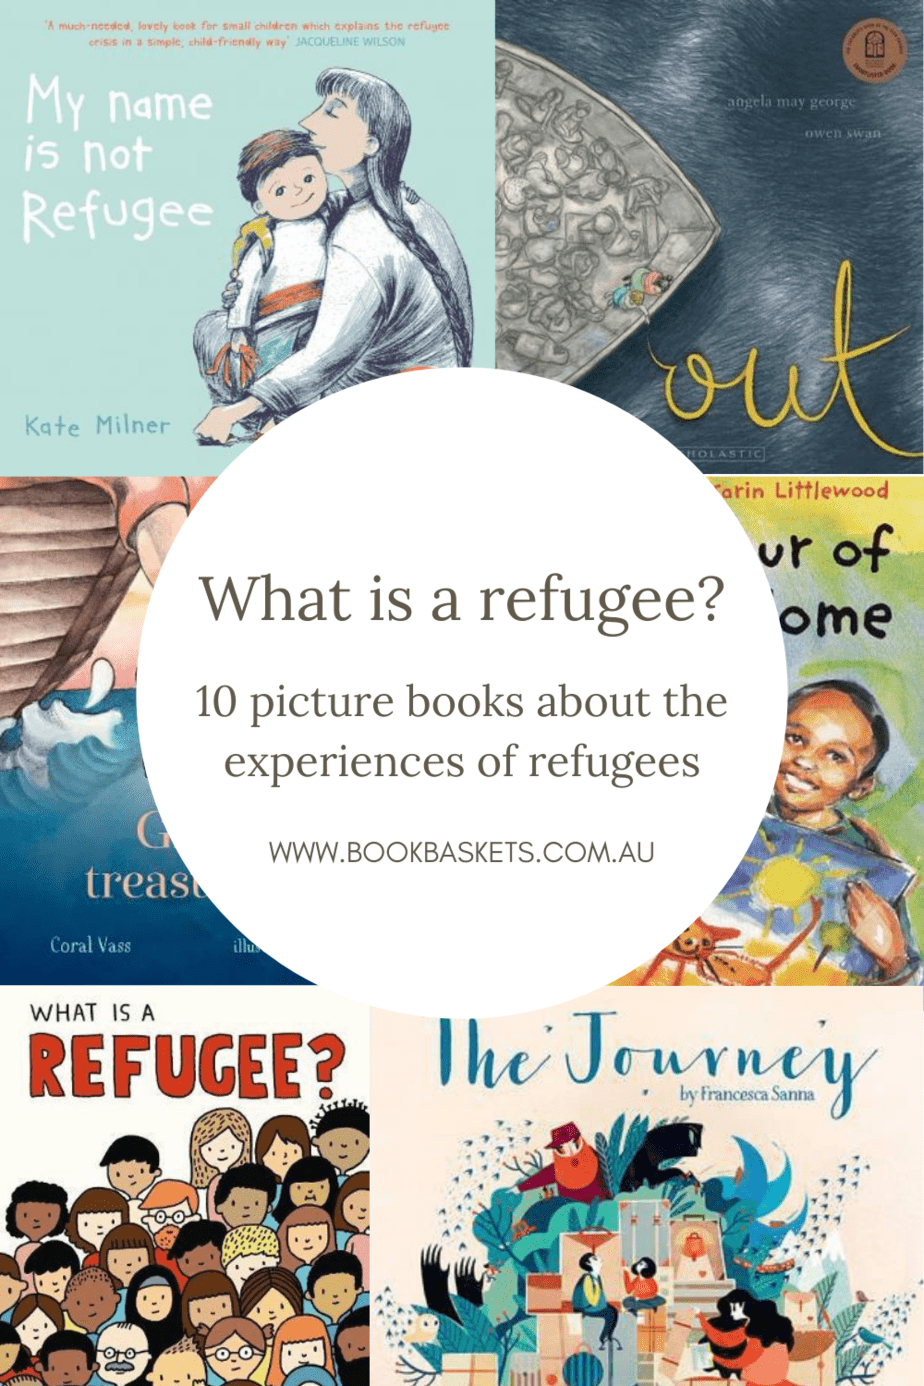 10 picture books about the experiences of refugees